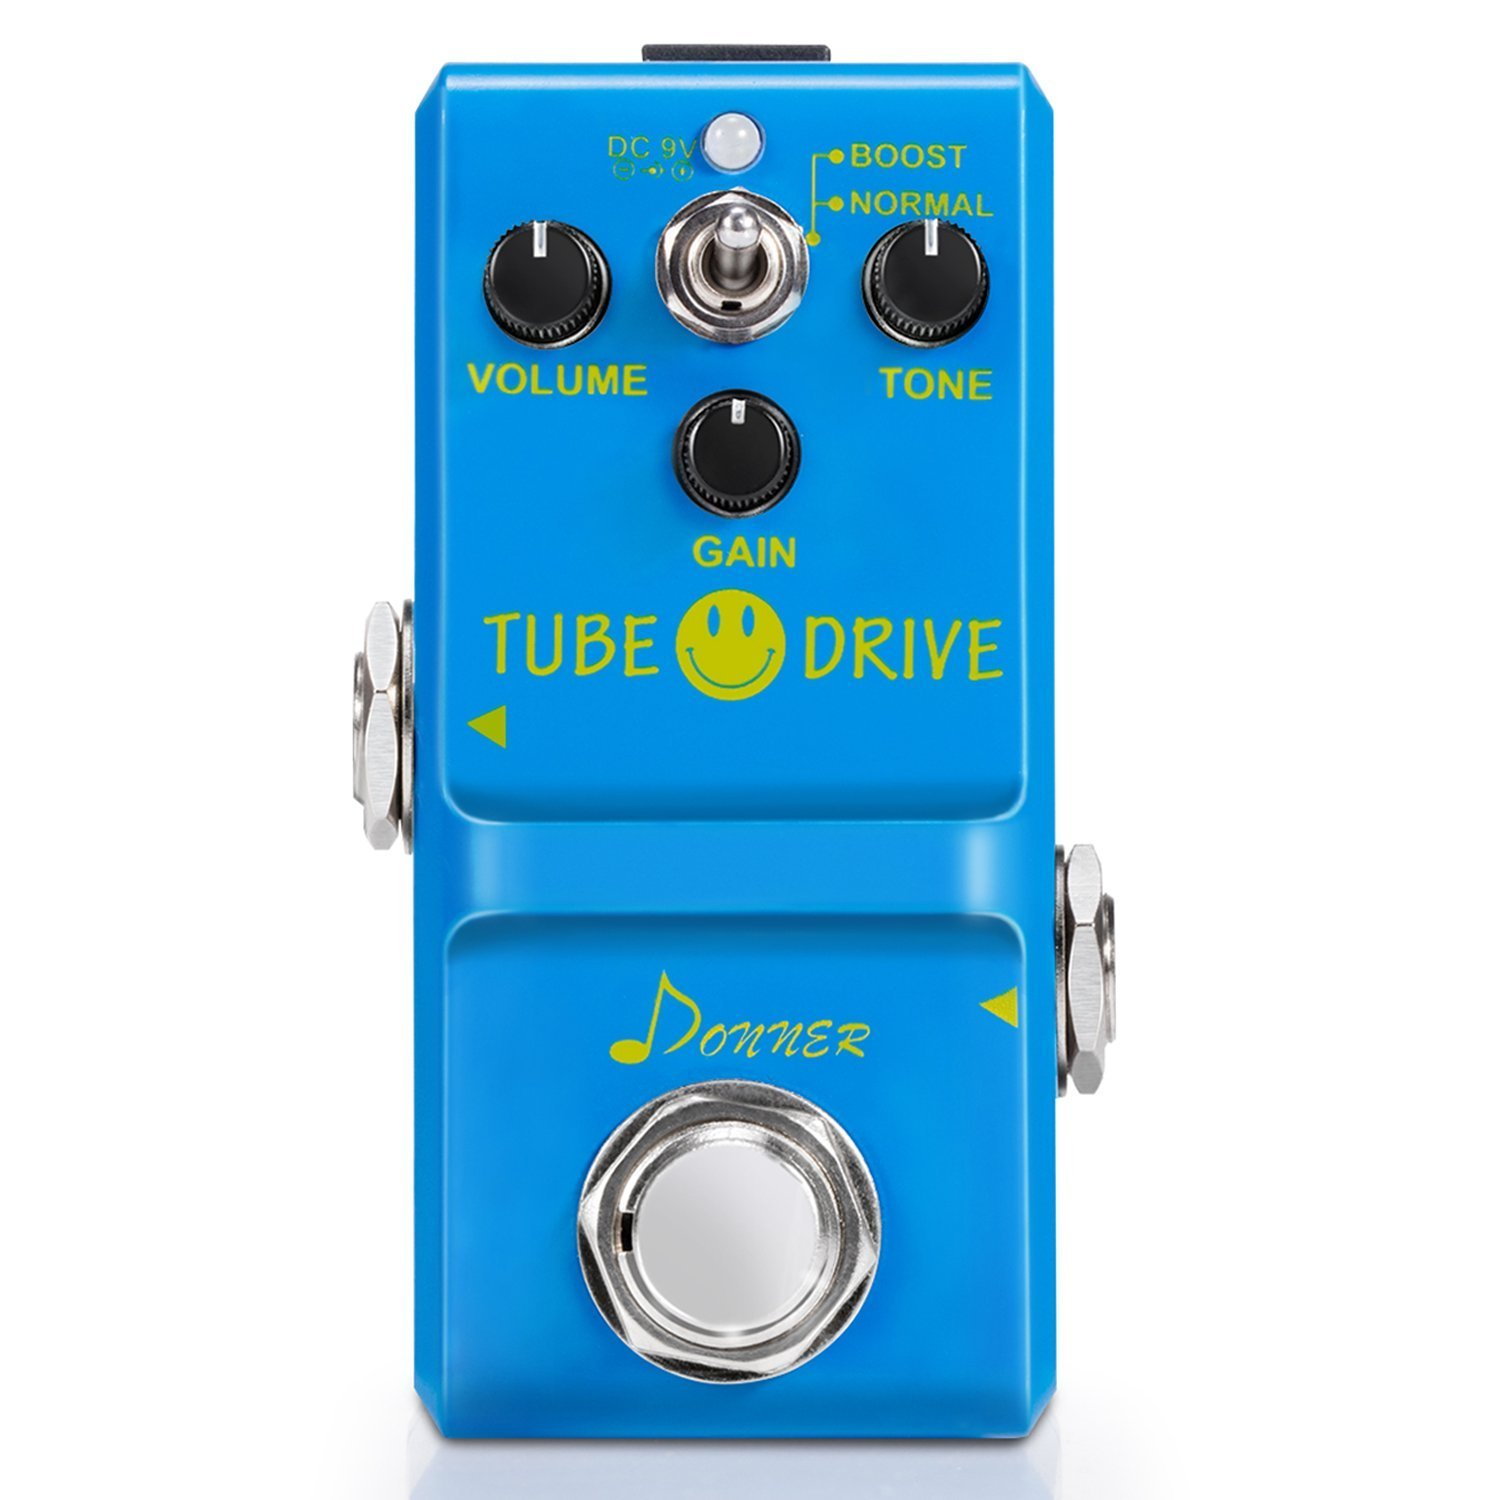 Top 10 Best Donner Guitar Pedals Reviews in 2020 5